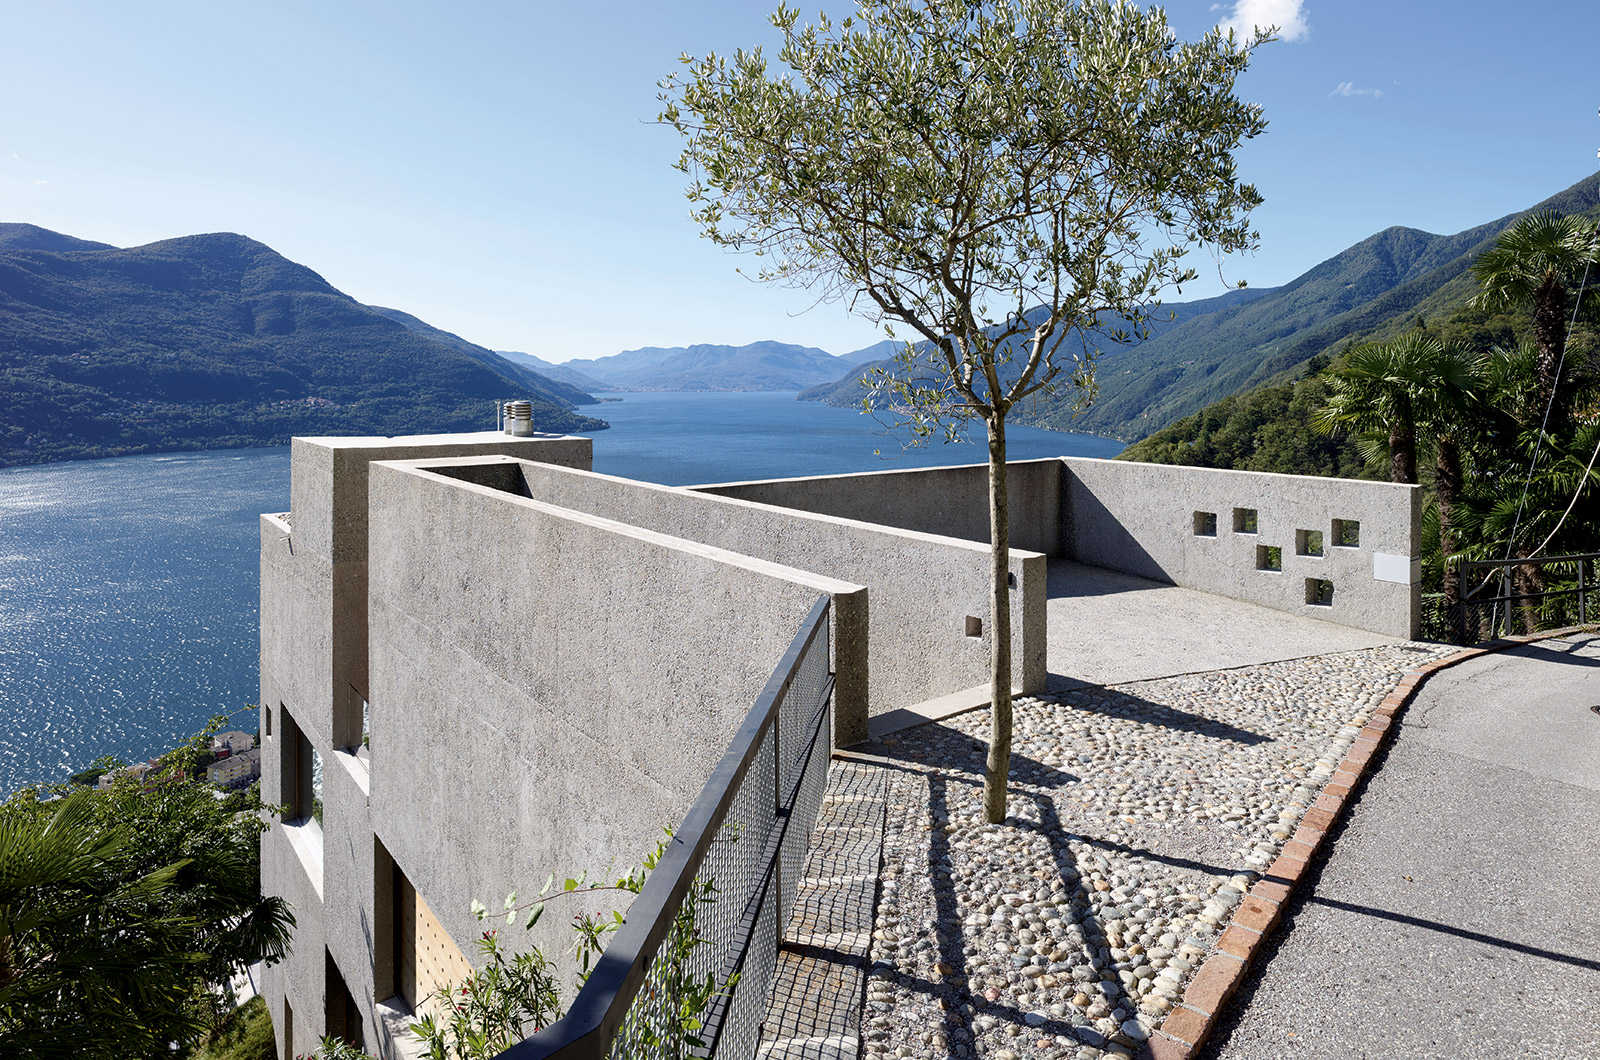 Living on the water: Brissago house